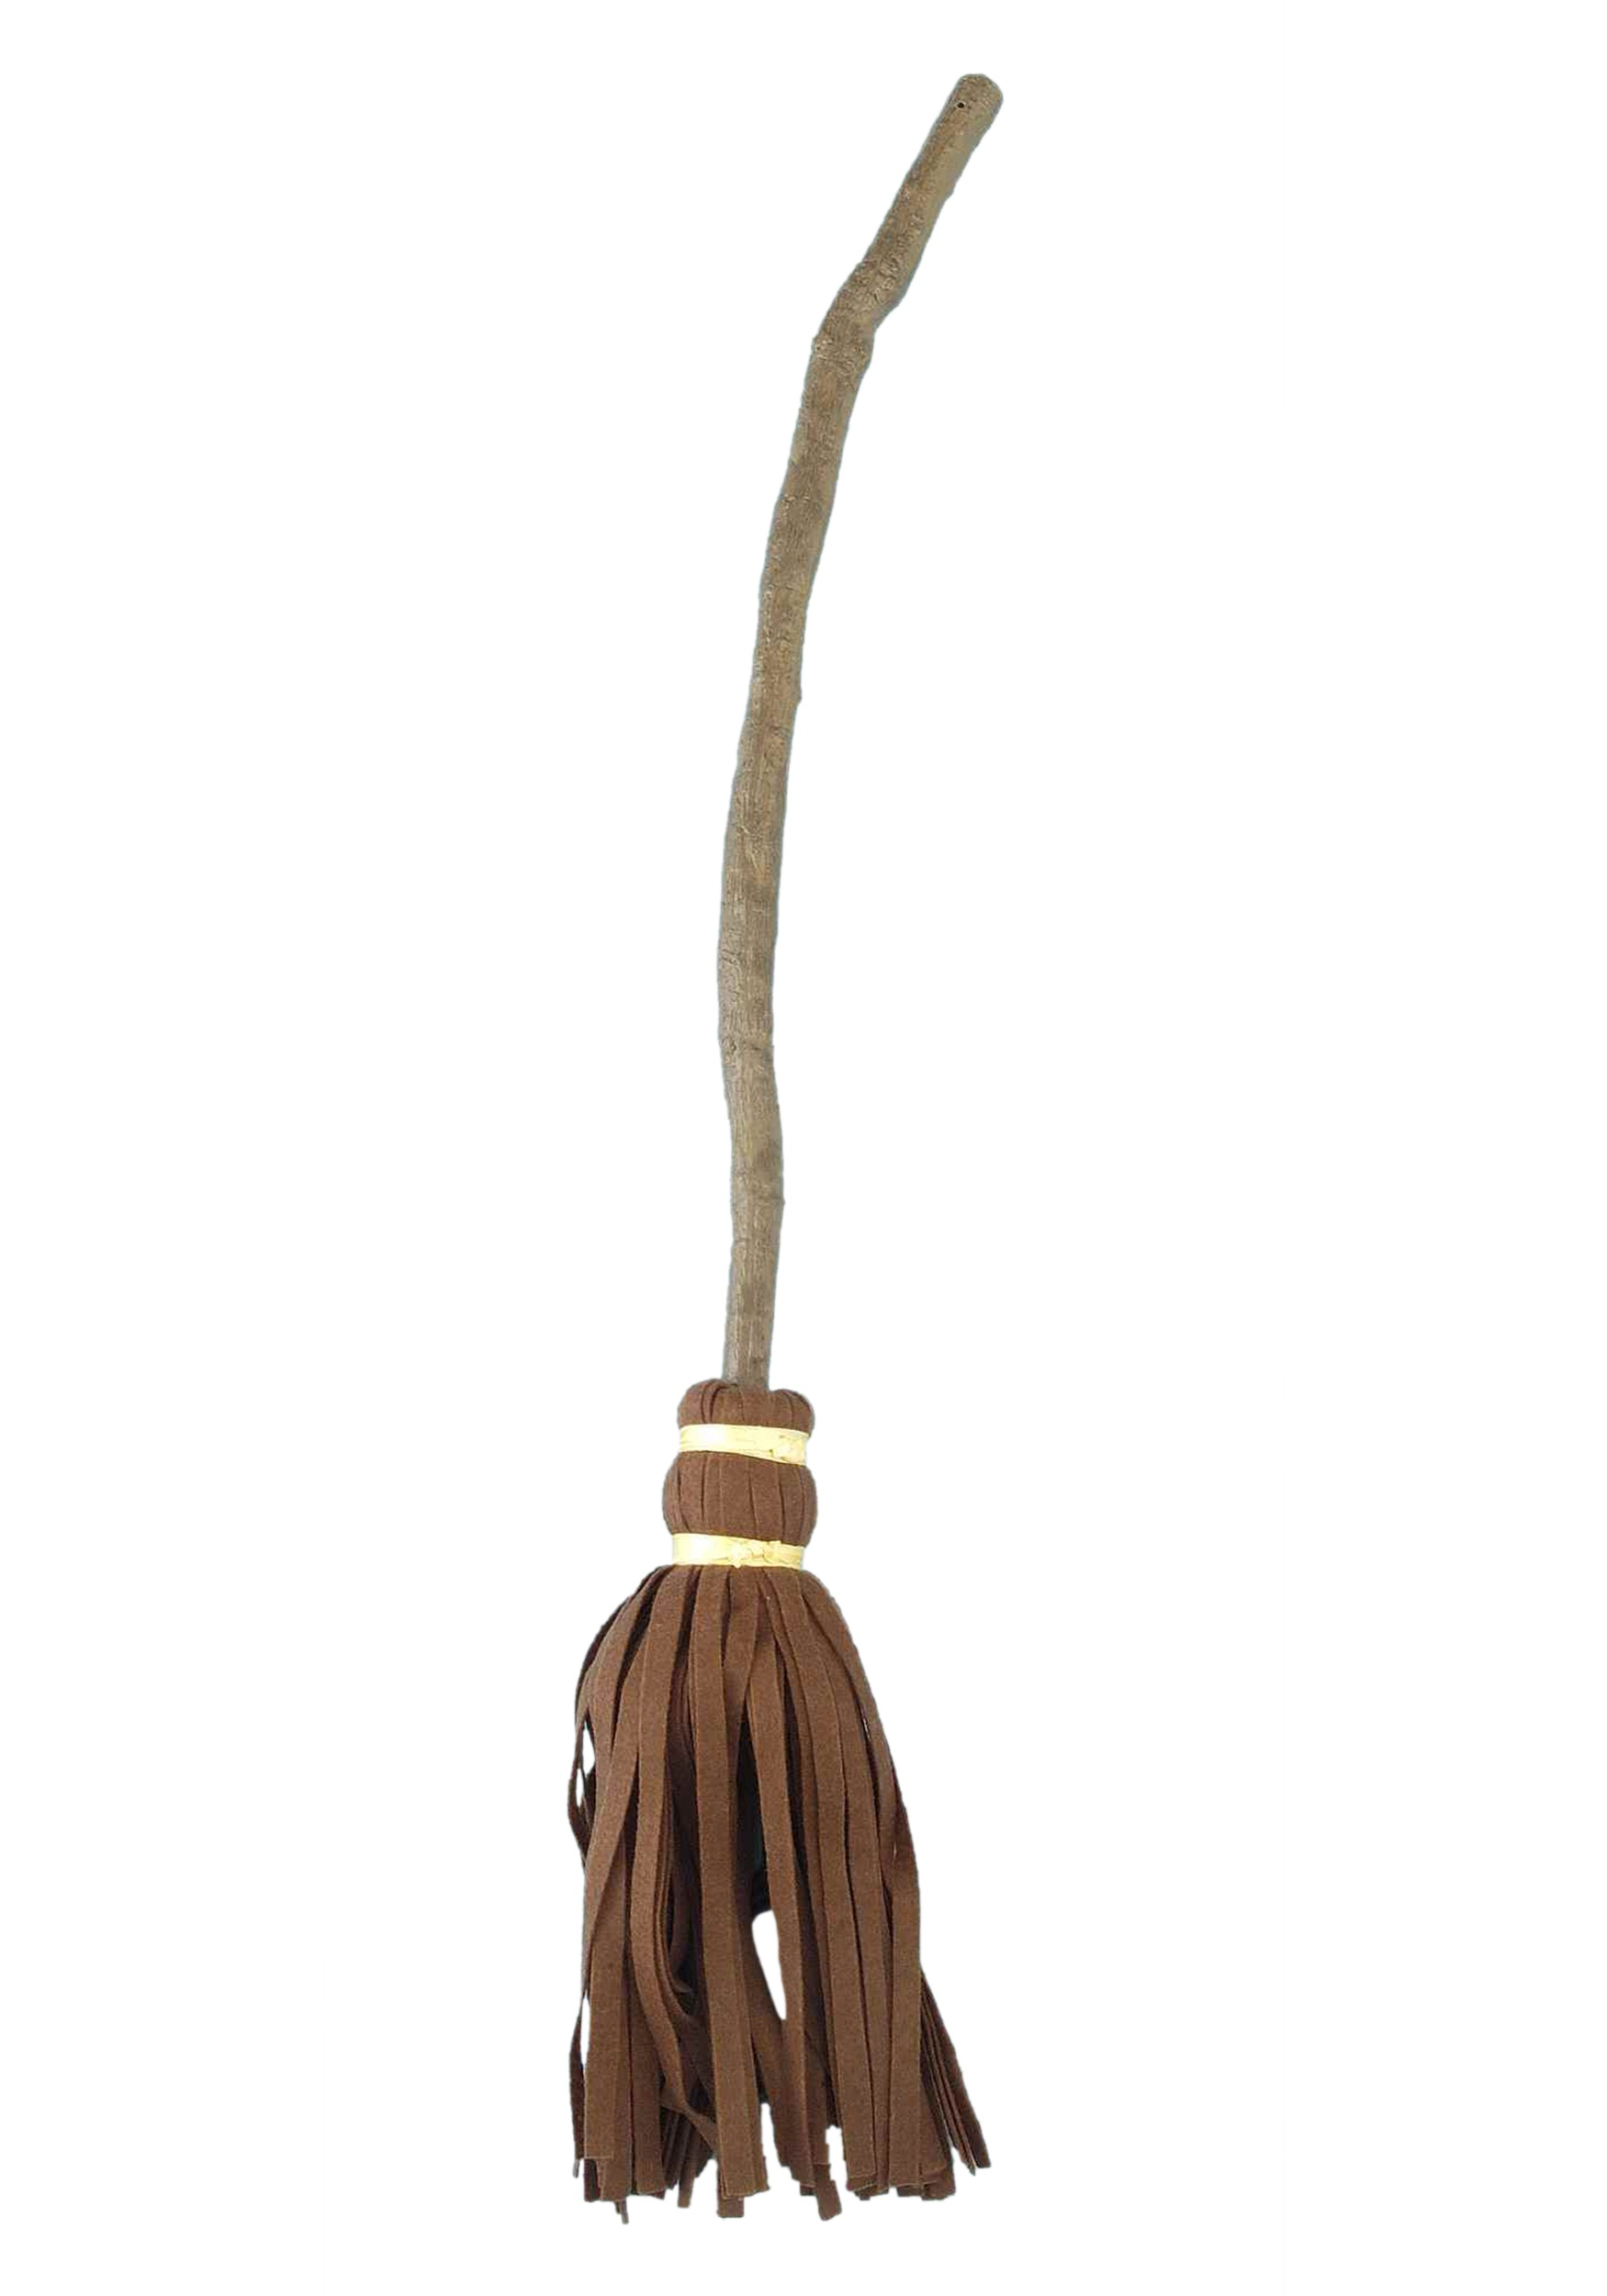 wizarad of oz child crooked witch broom